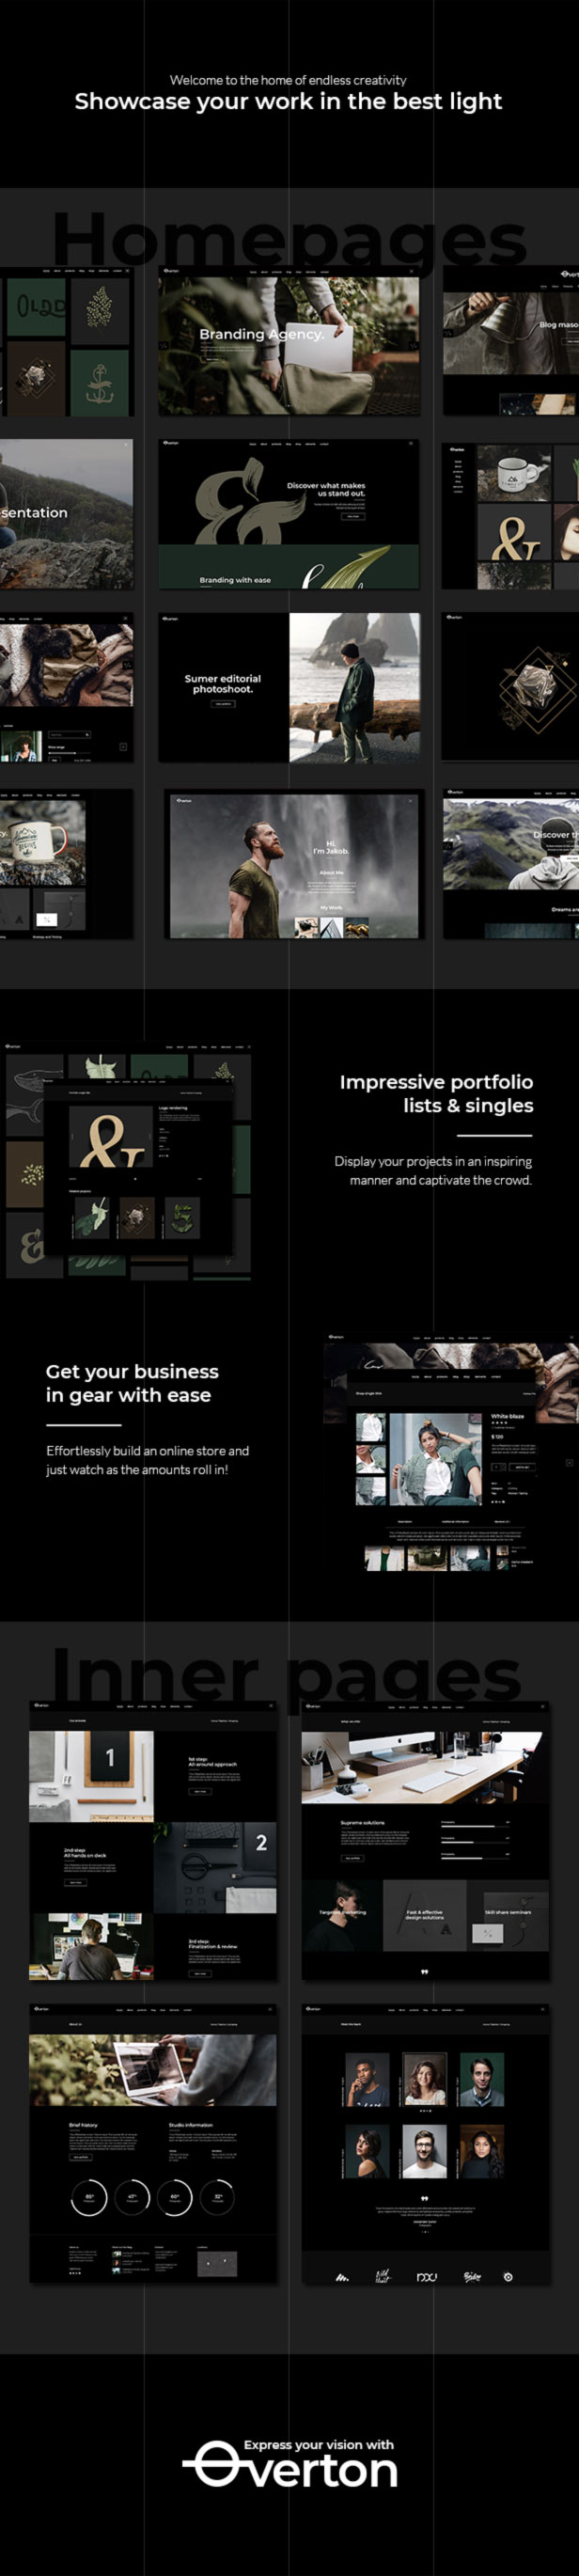 Overton - Creative Theme for Agencies and Freelancers - 1